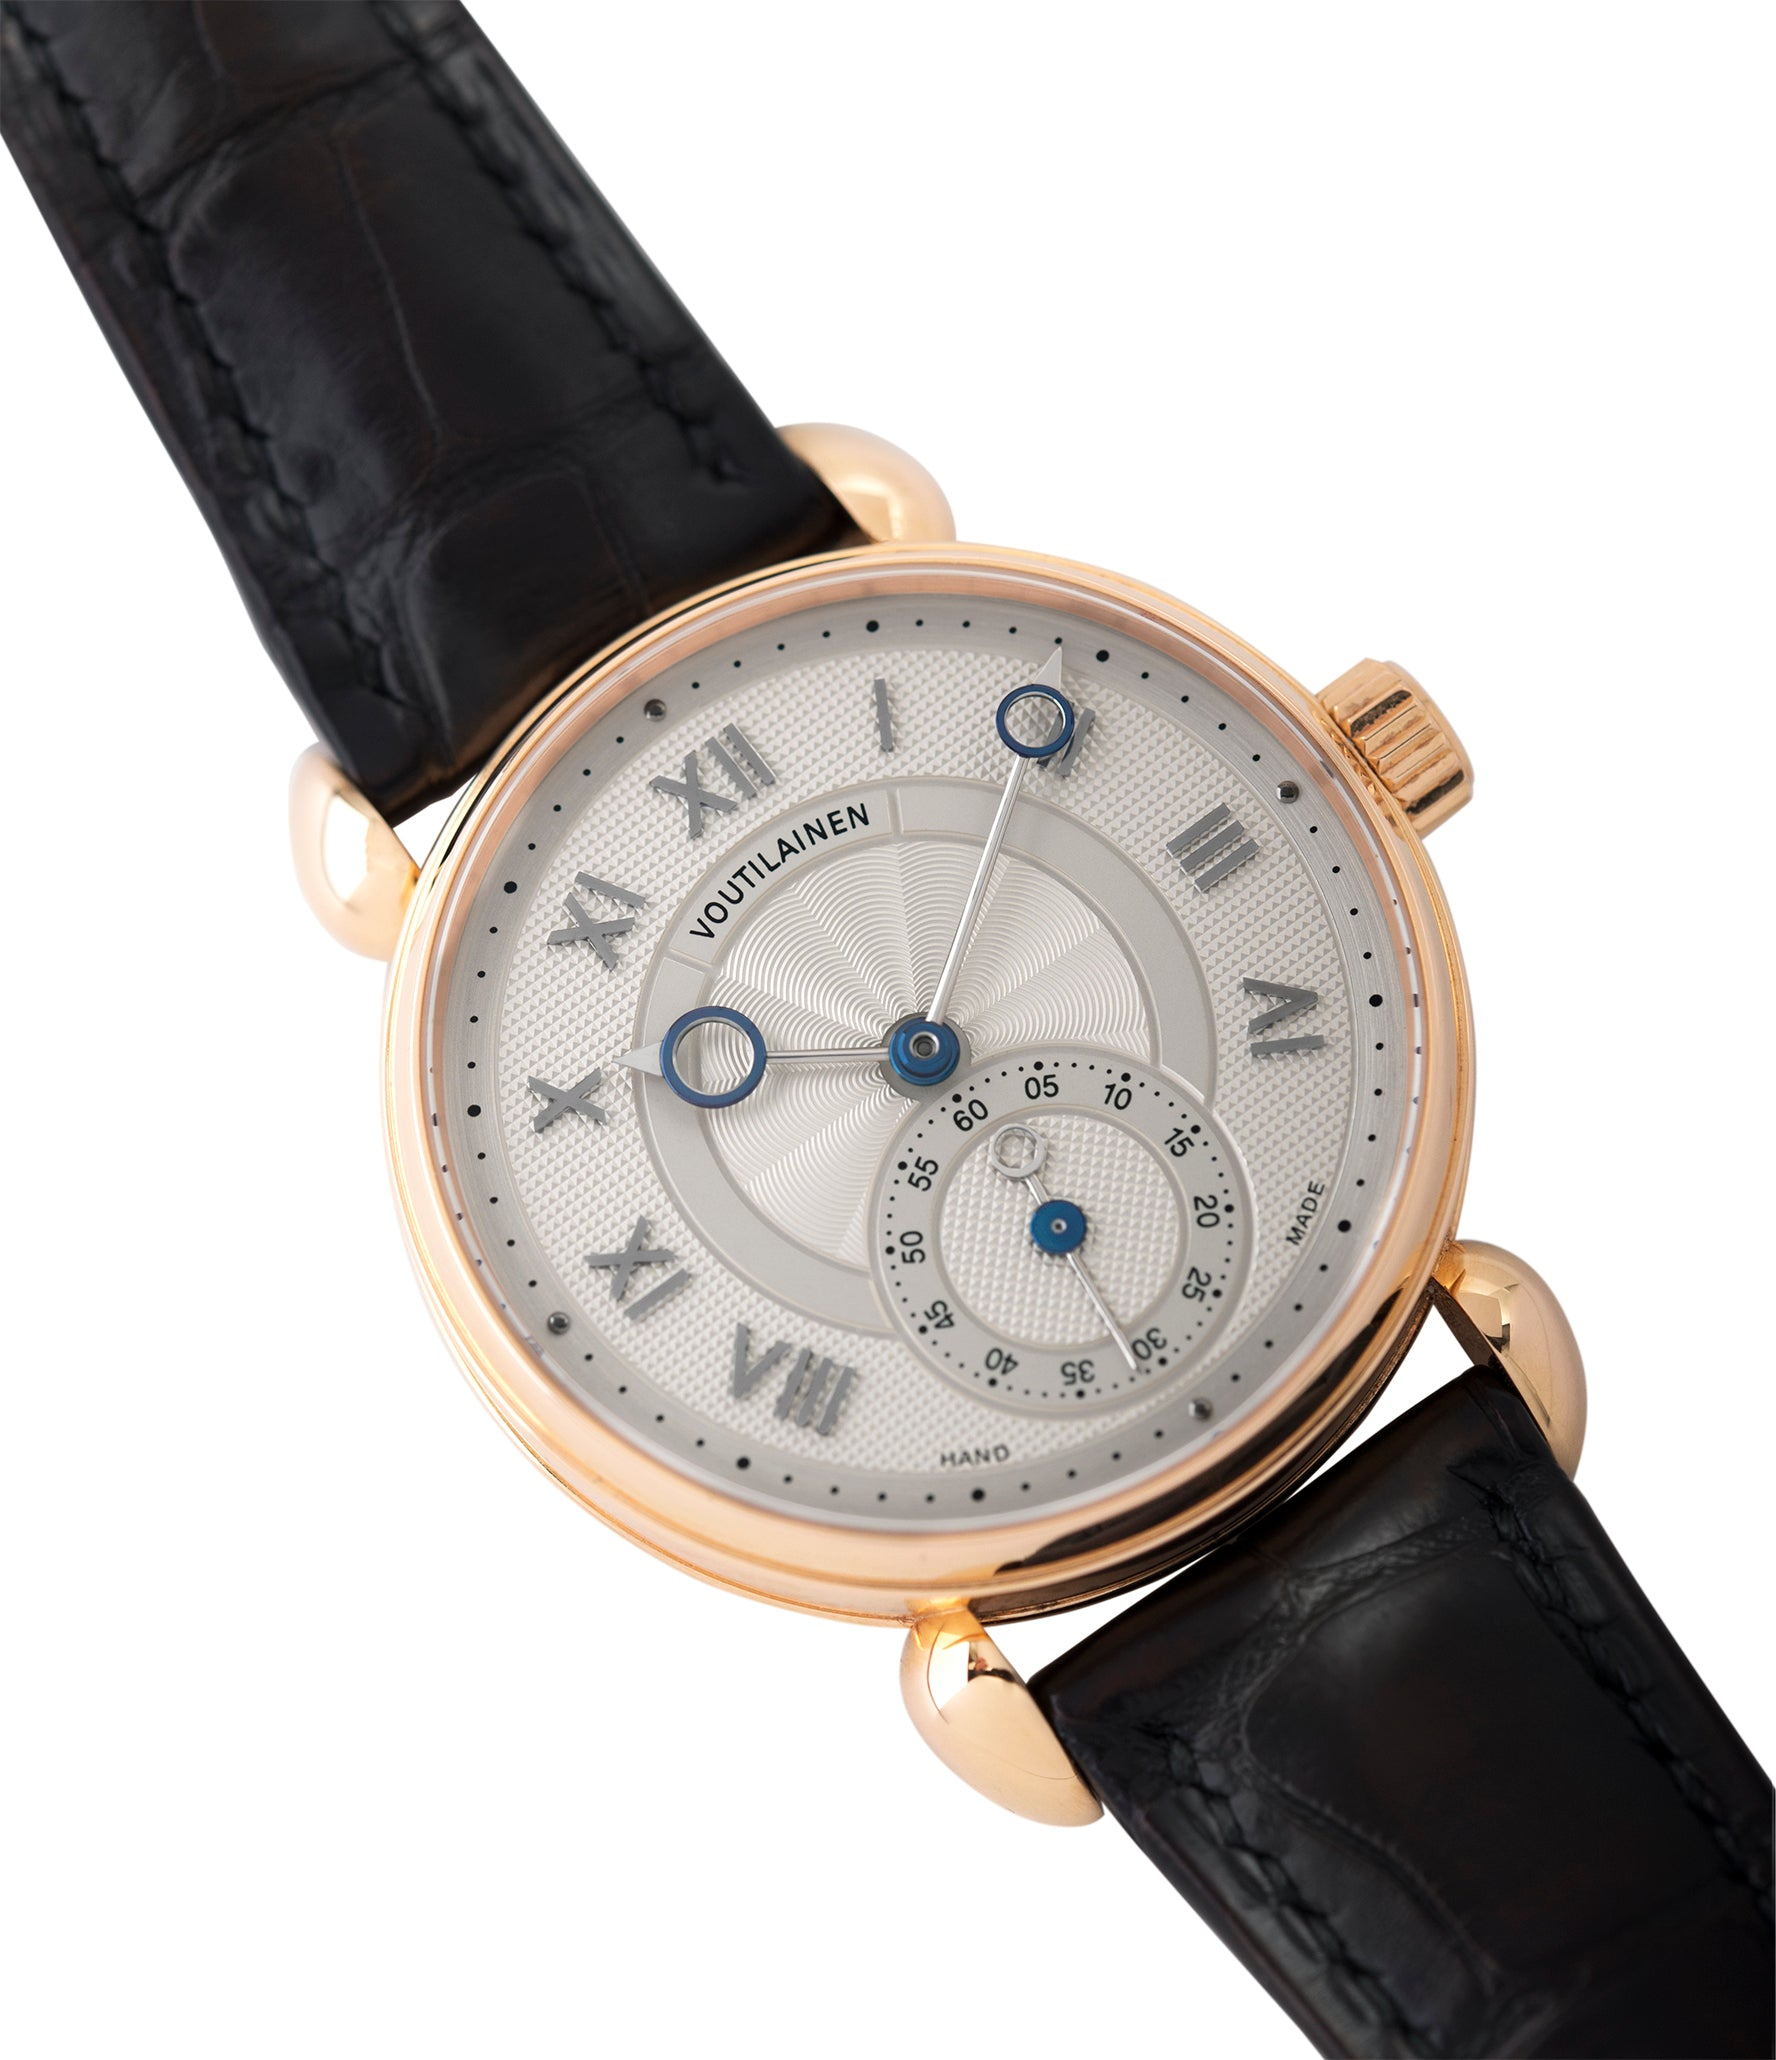 sell Voutilainen Observatoire Limited Edition rose gold rare dress watch for sale online at A Collected Man London endorsed seller of independent watchmaker